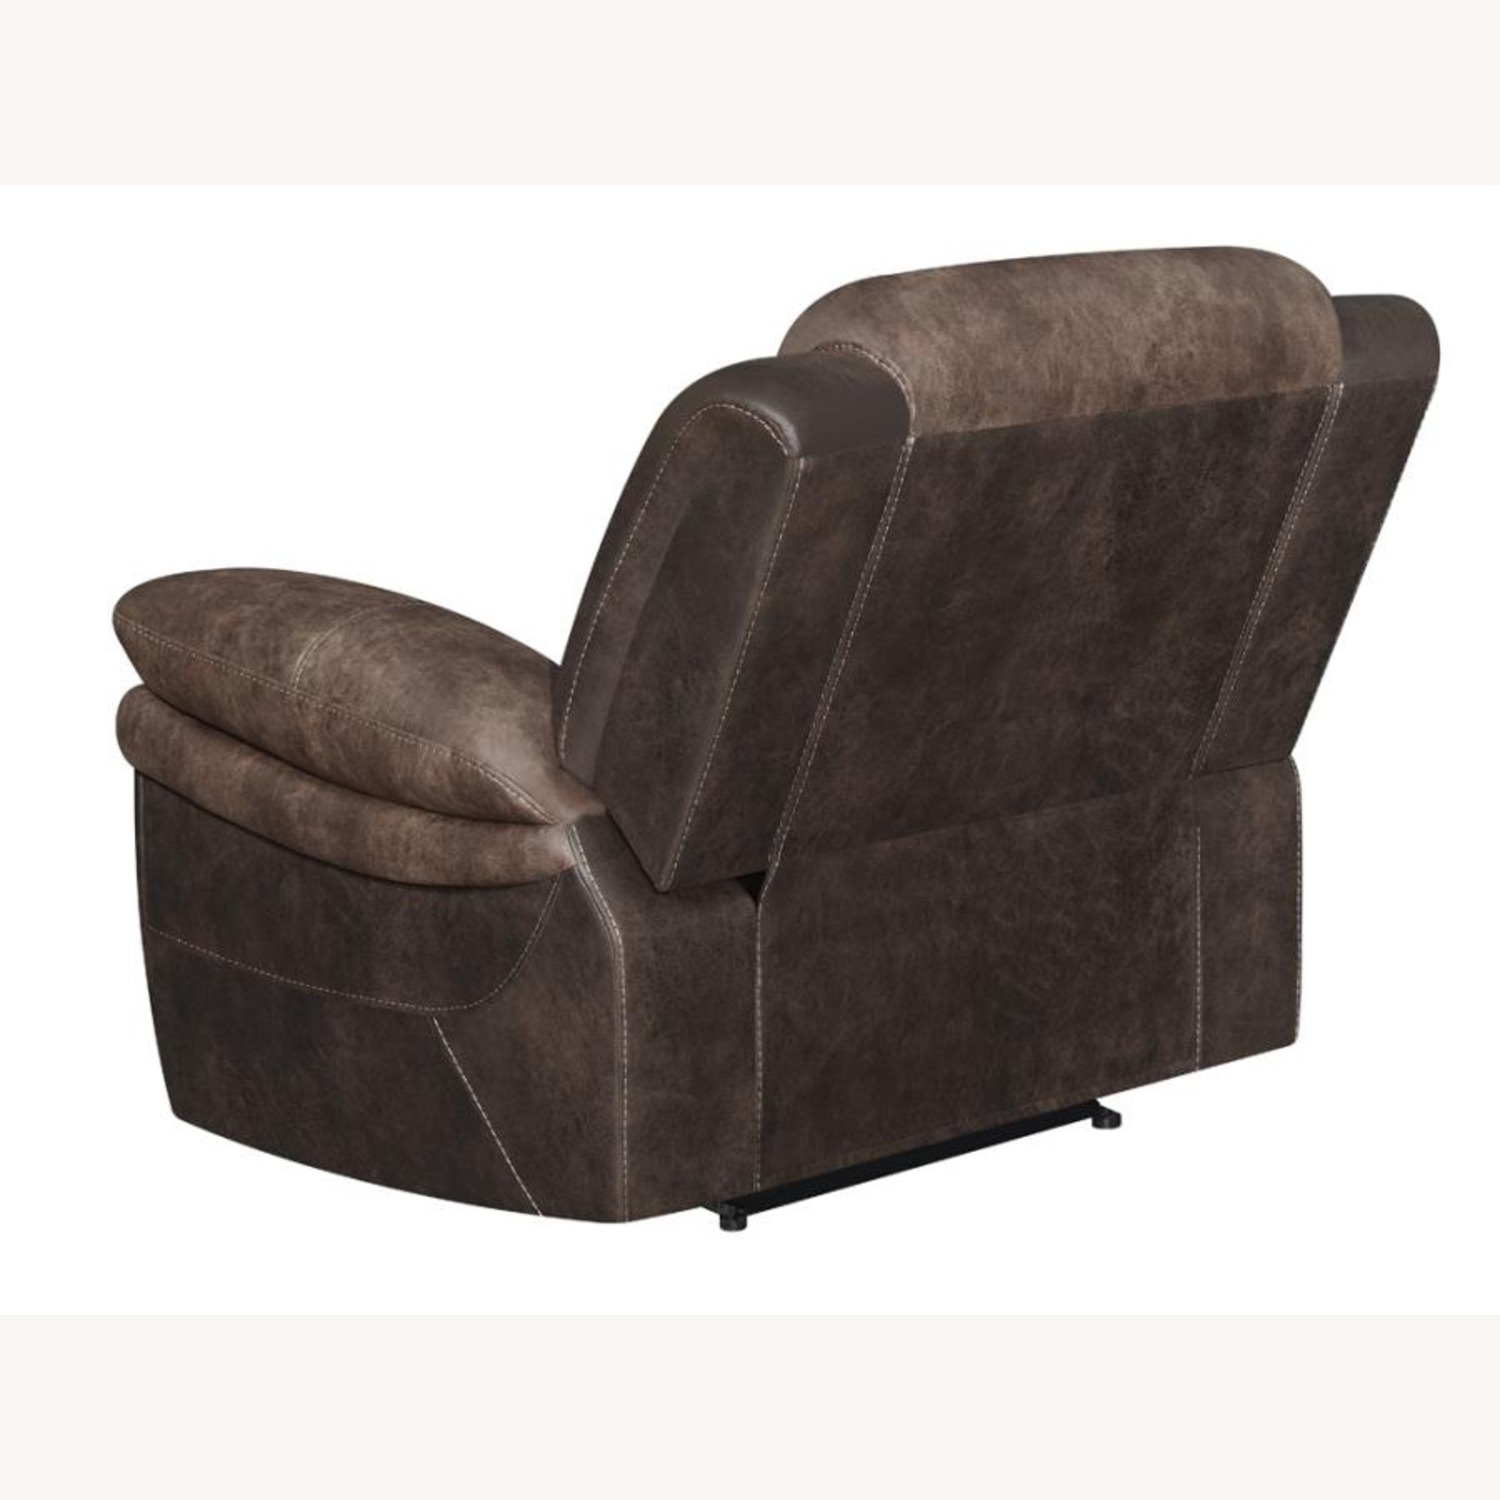 Recliner In Chocolate & Dark Brown Upholstery - image-3